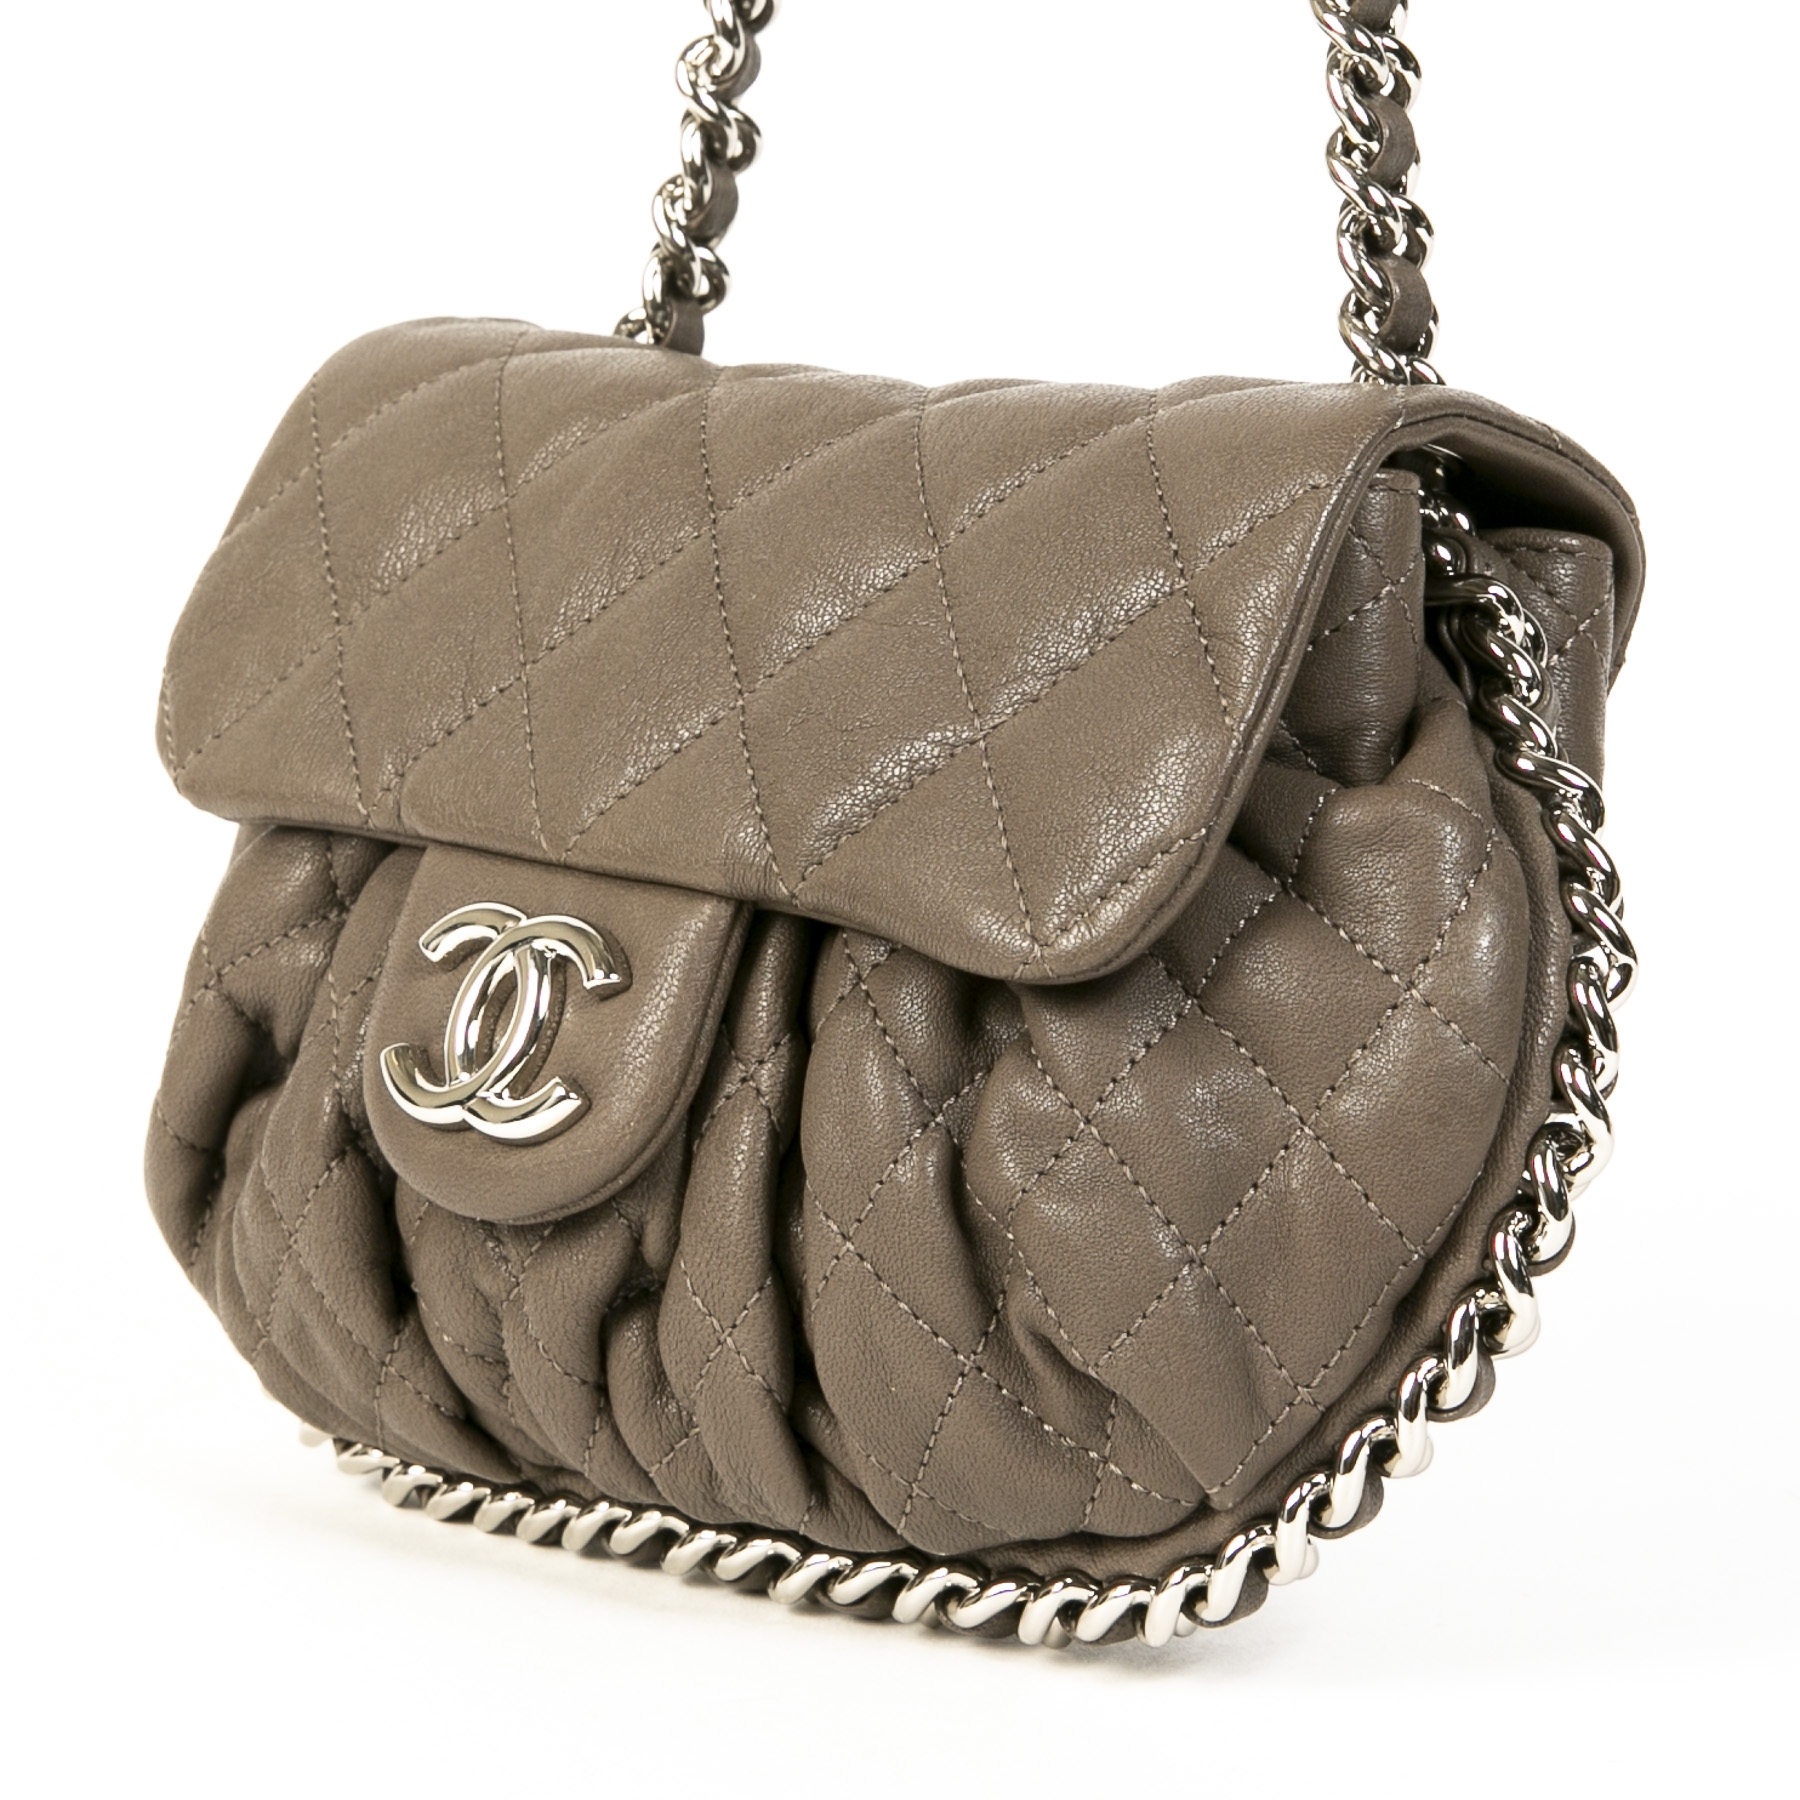 Authentieke tweedehands vintage Chanel Chain Around Taupe Crossbody Bag koop online webshop LabelLOV